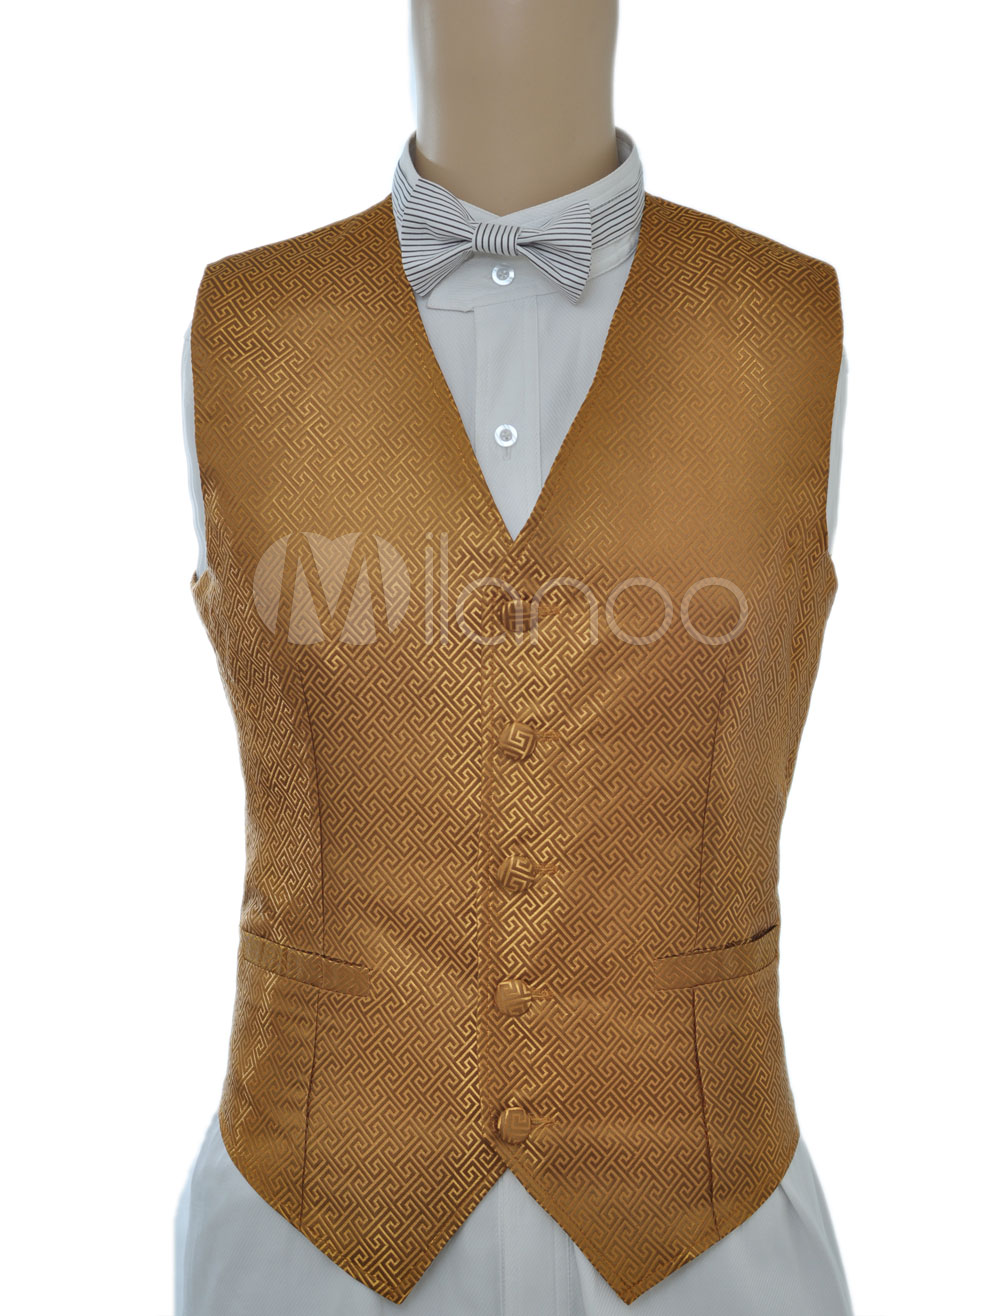 Buy Vintage Steampunk Costume Waistcoat Gold Men's Back Strap Retro Suit Vest Halloween for $57.99 in Milanoo store